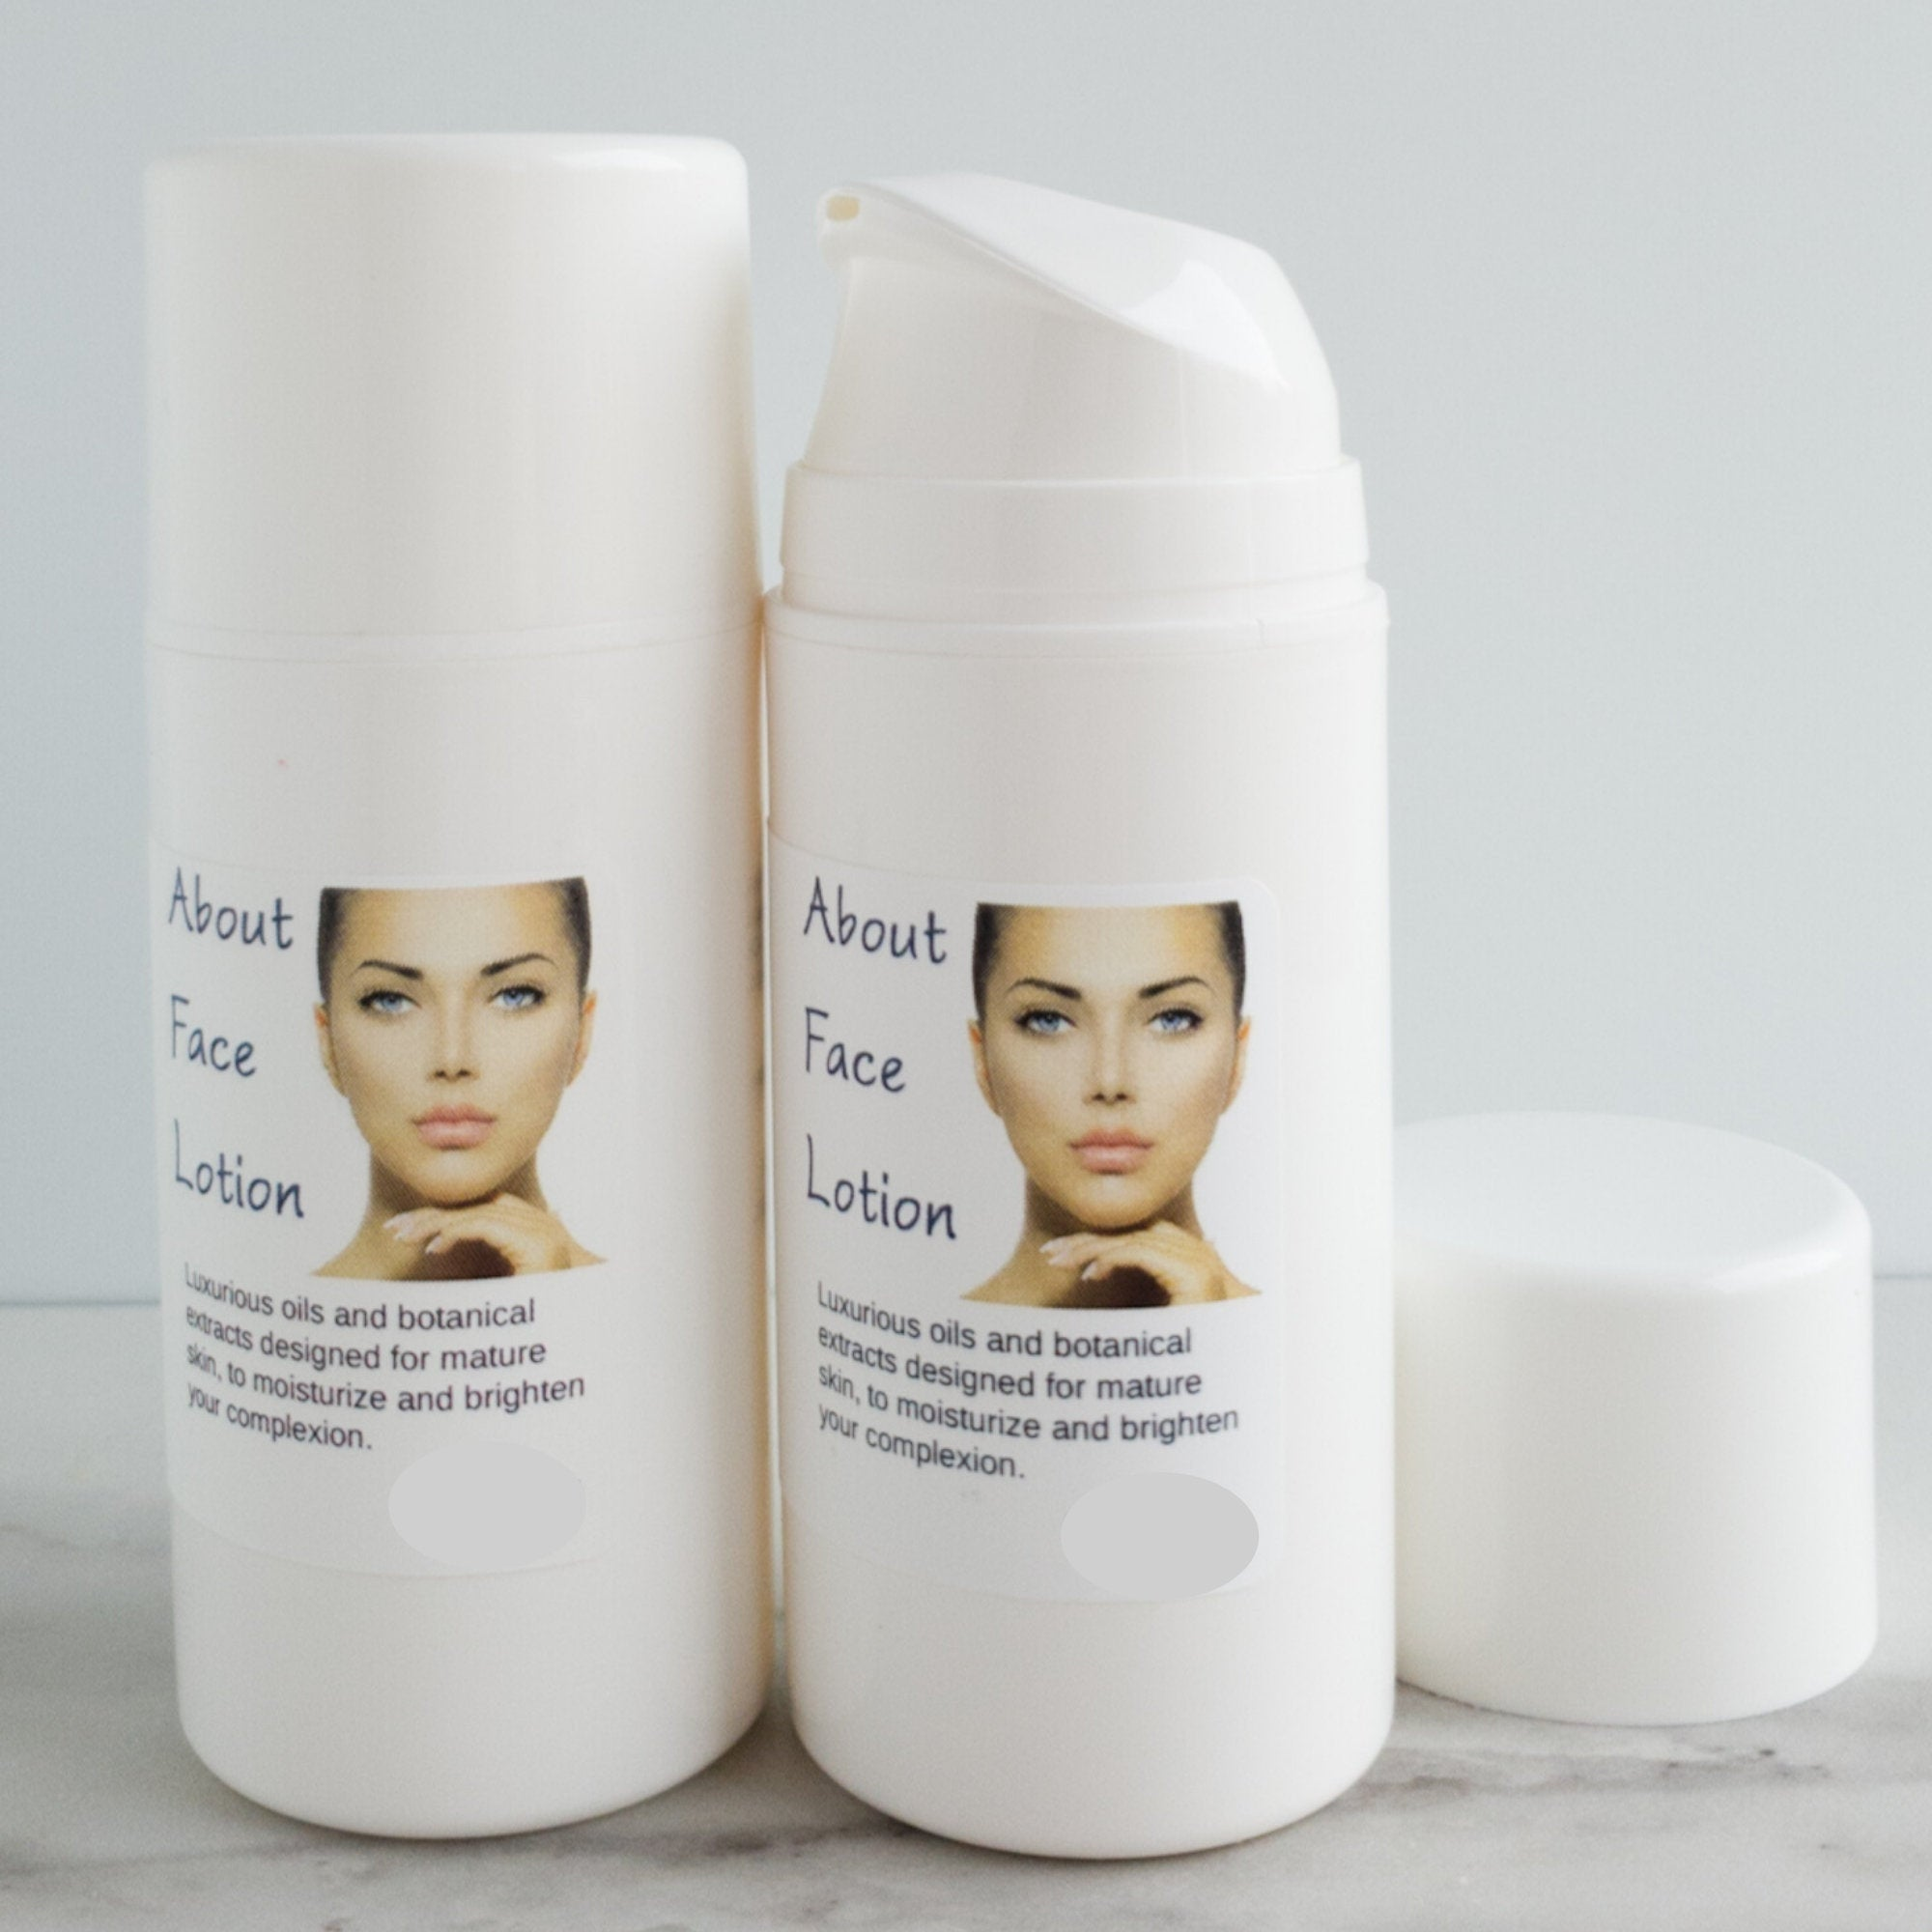 Two bottles of About Face Lotion for mature skin.